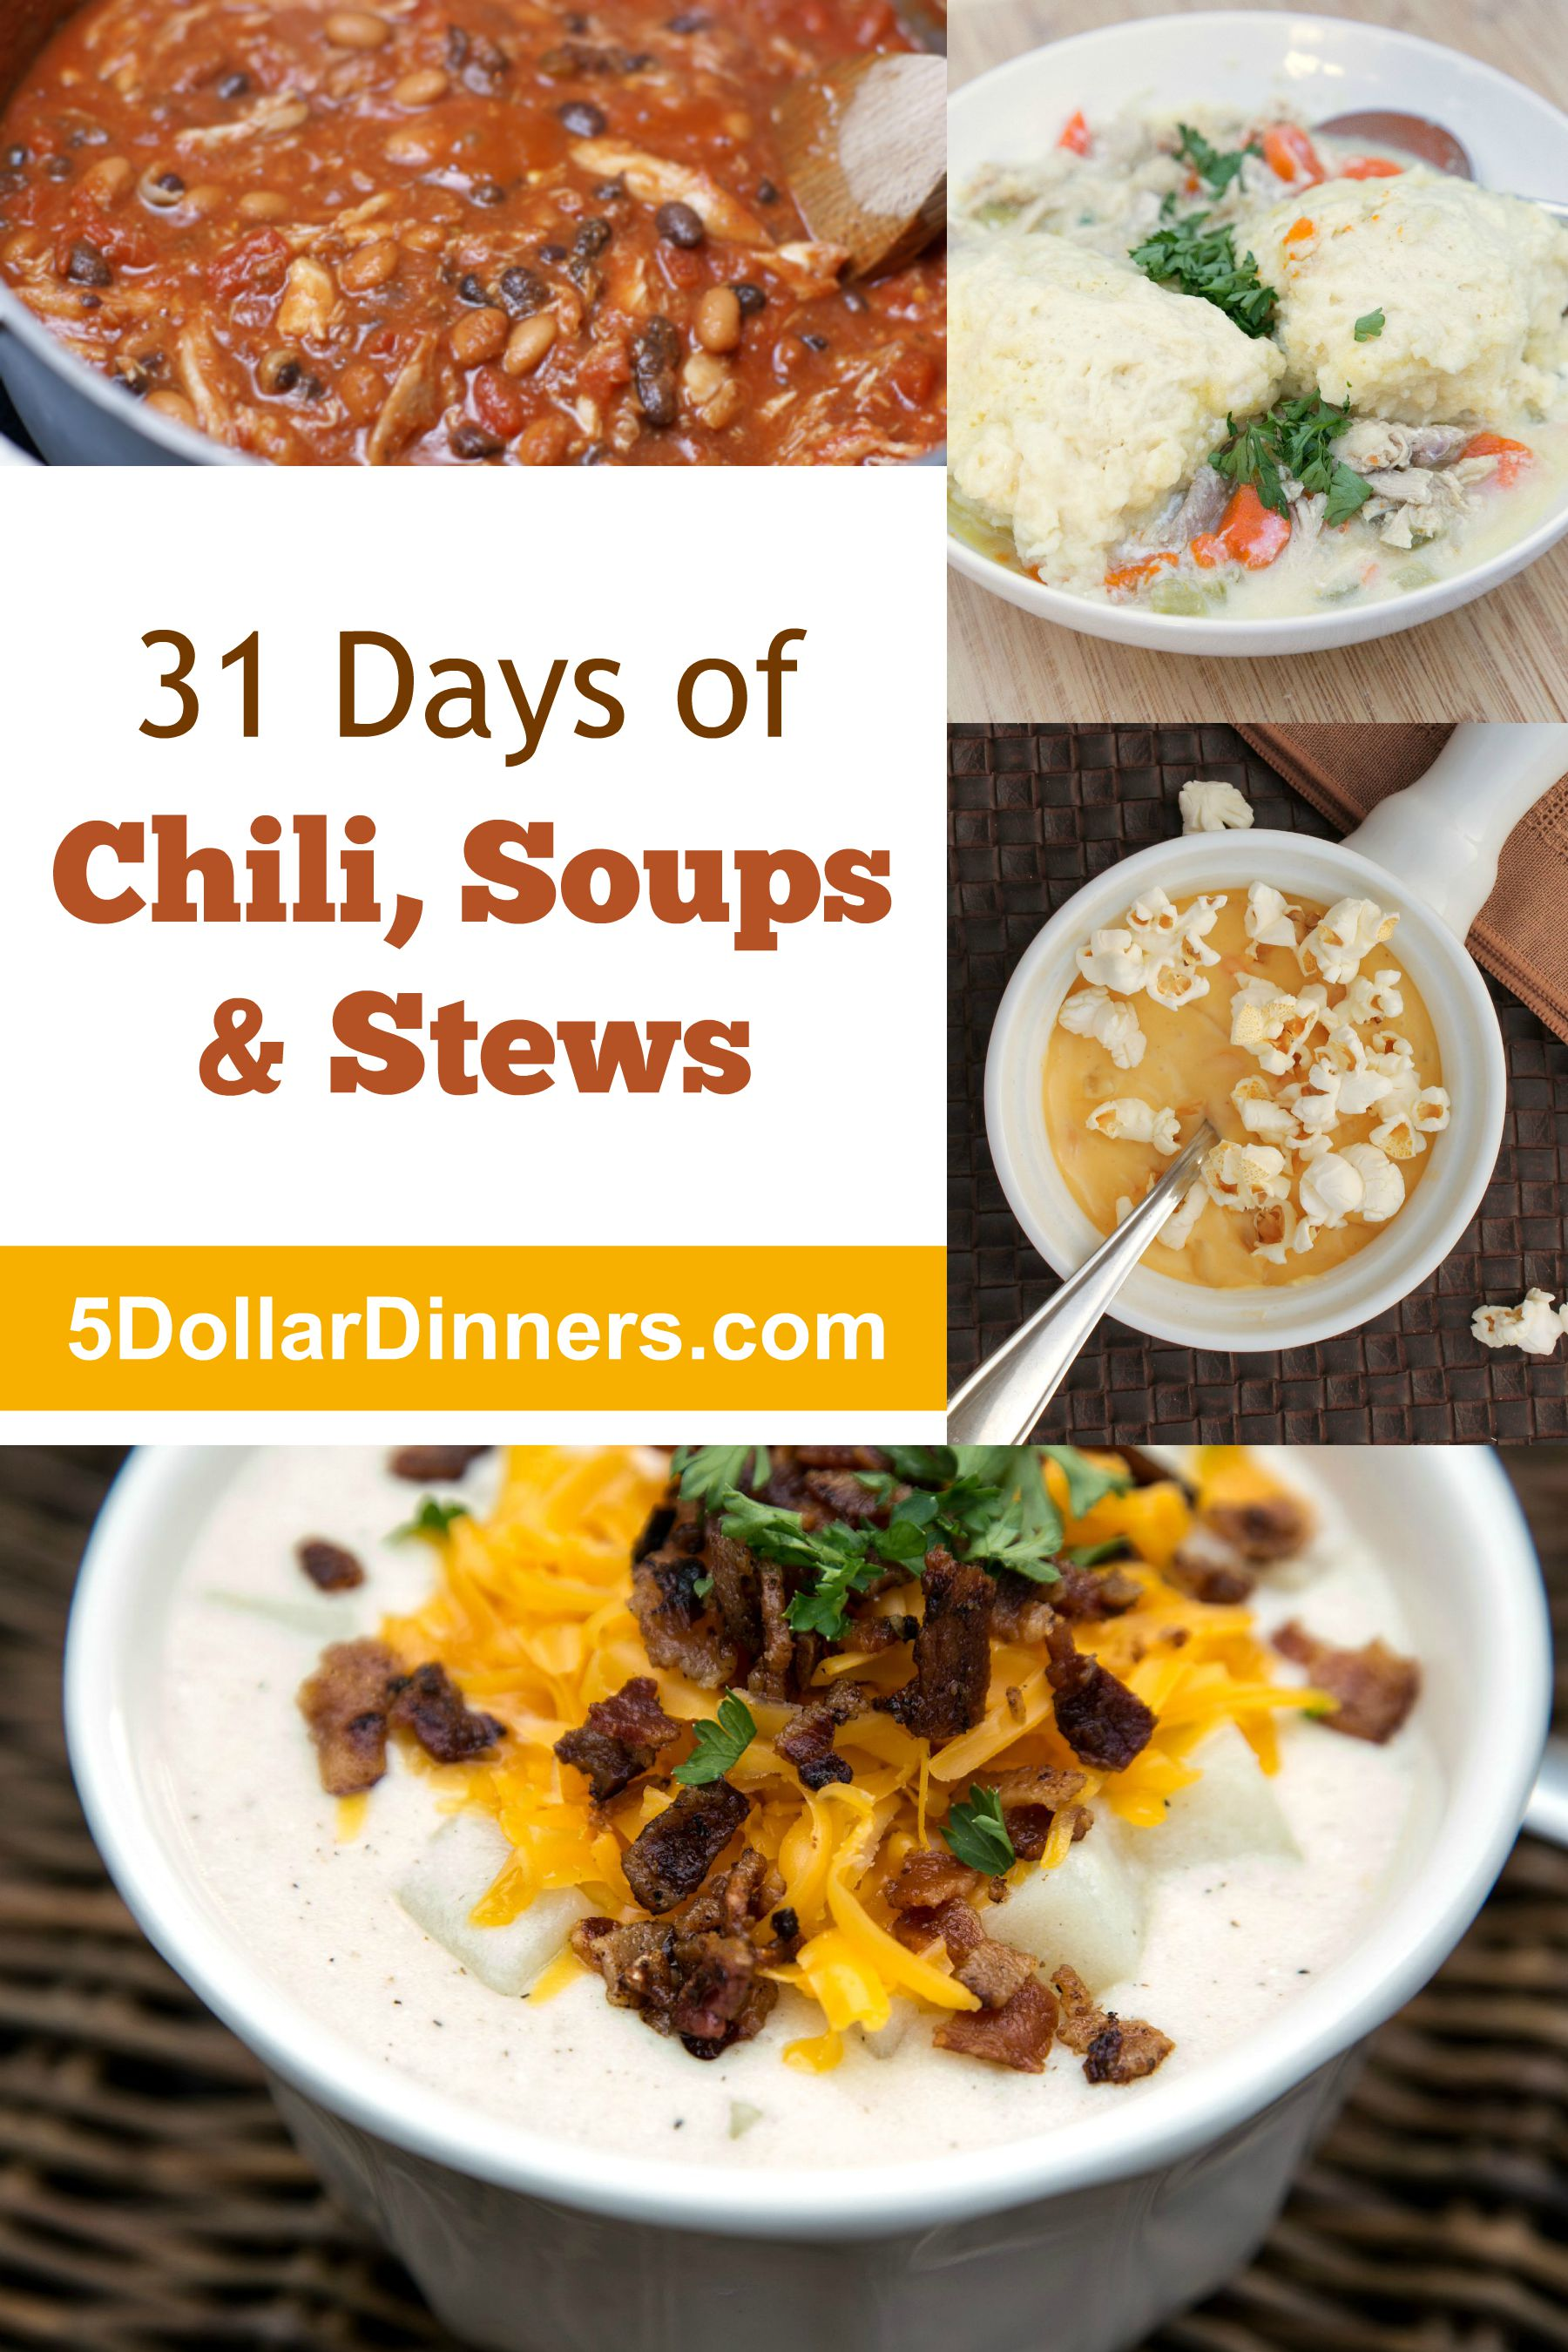 31 Days of Soups, Chili, and Stews from 5DollarDinners.com